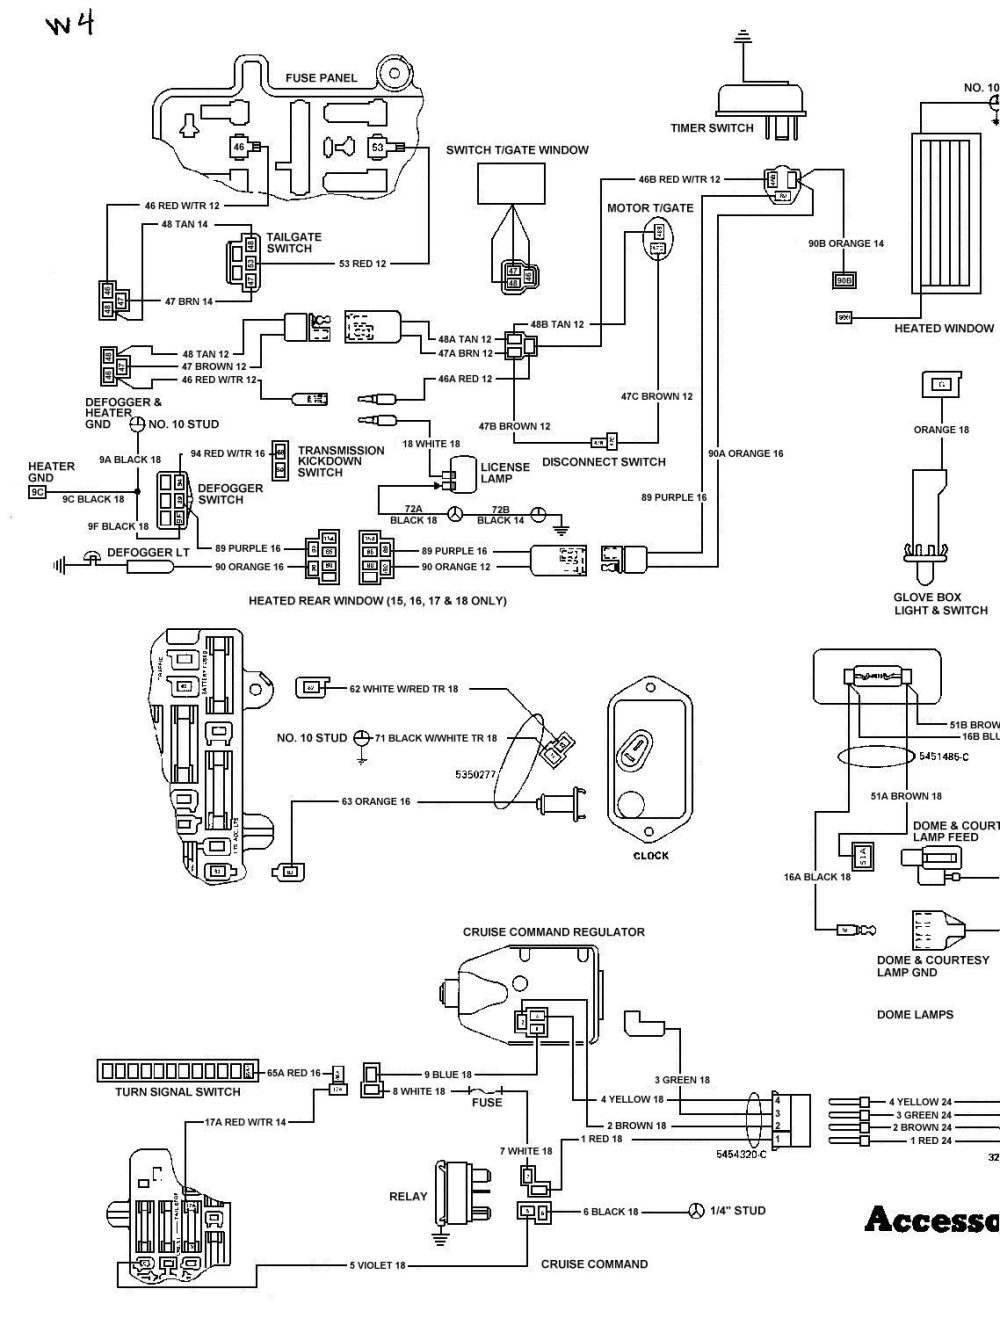 medium resolution of 76 jeep wagoneer wiring diagram free picture wiring diagram third1976 jeep j10 wiring data wiring diagram